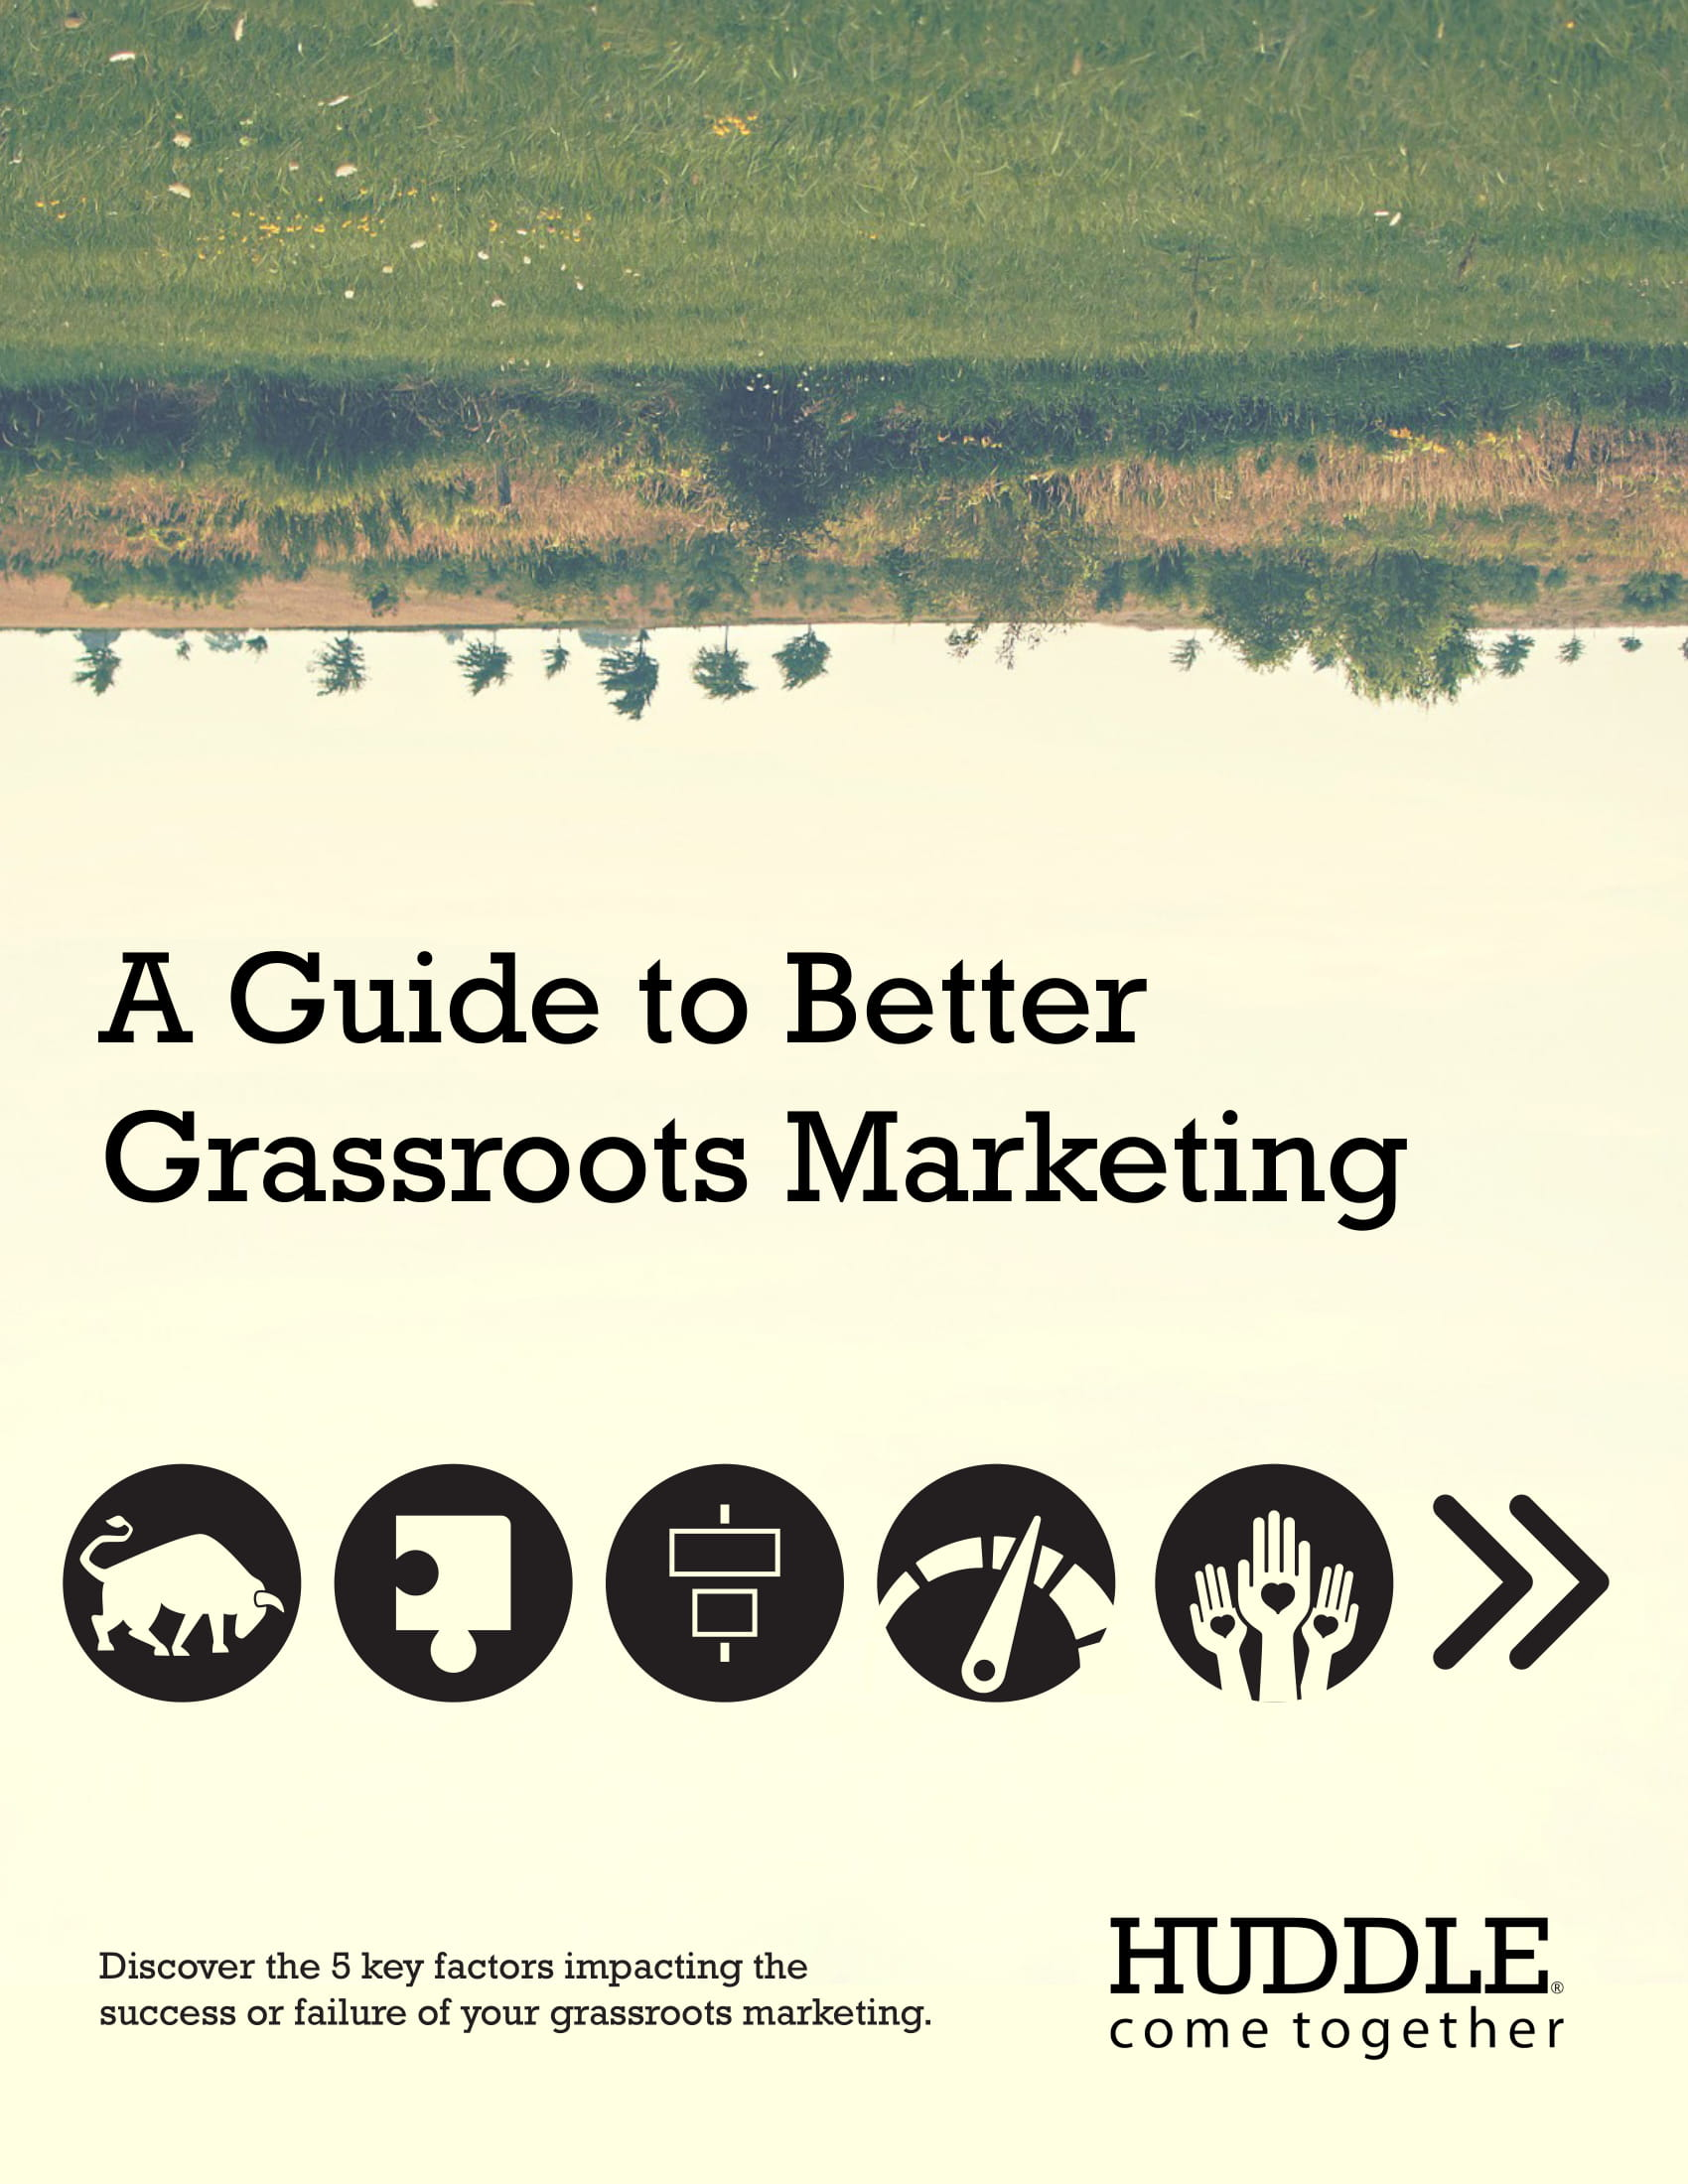 grassroots marketing guide 1